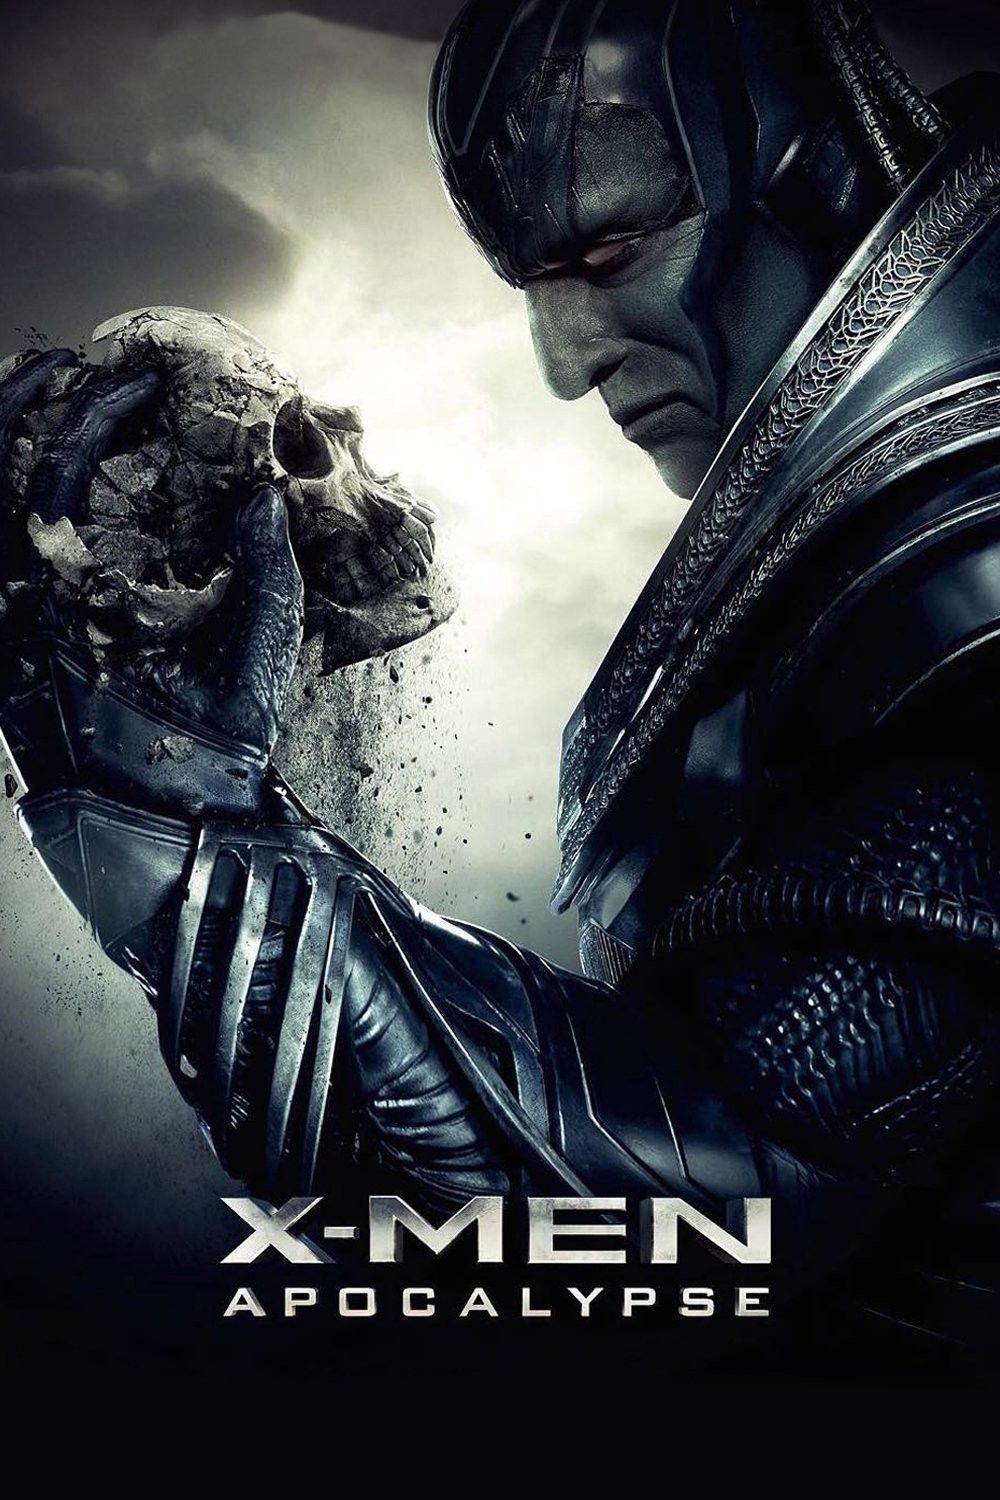 x men apocalypse 2016 watch movies online watch x men x men apocalypse 2016 watch movies online watch x